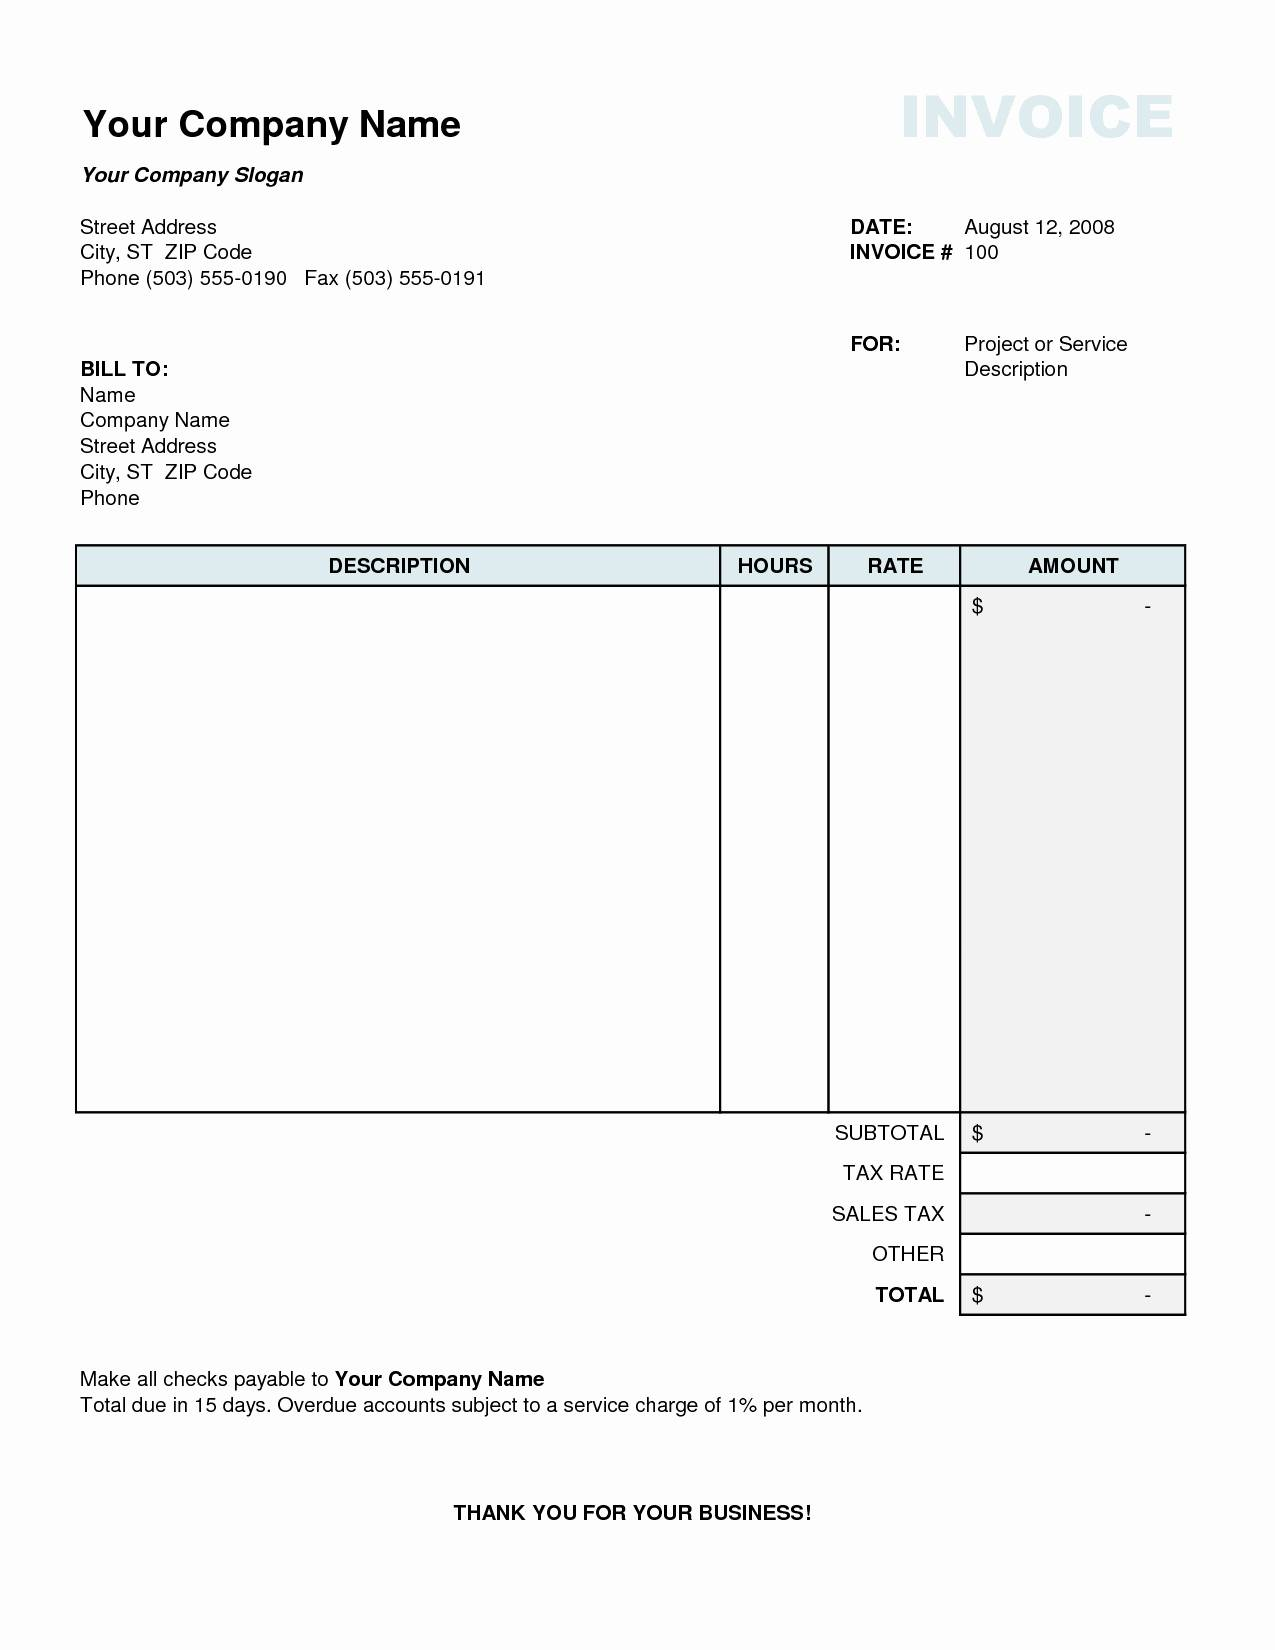 Invoice Sample Template Excel